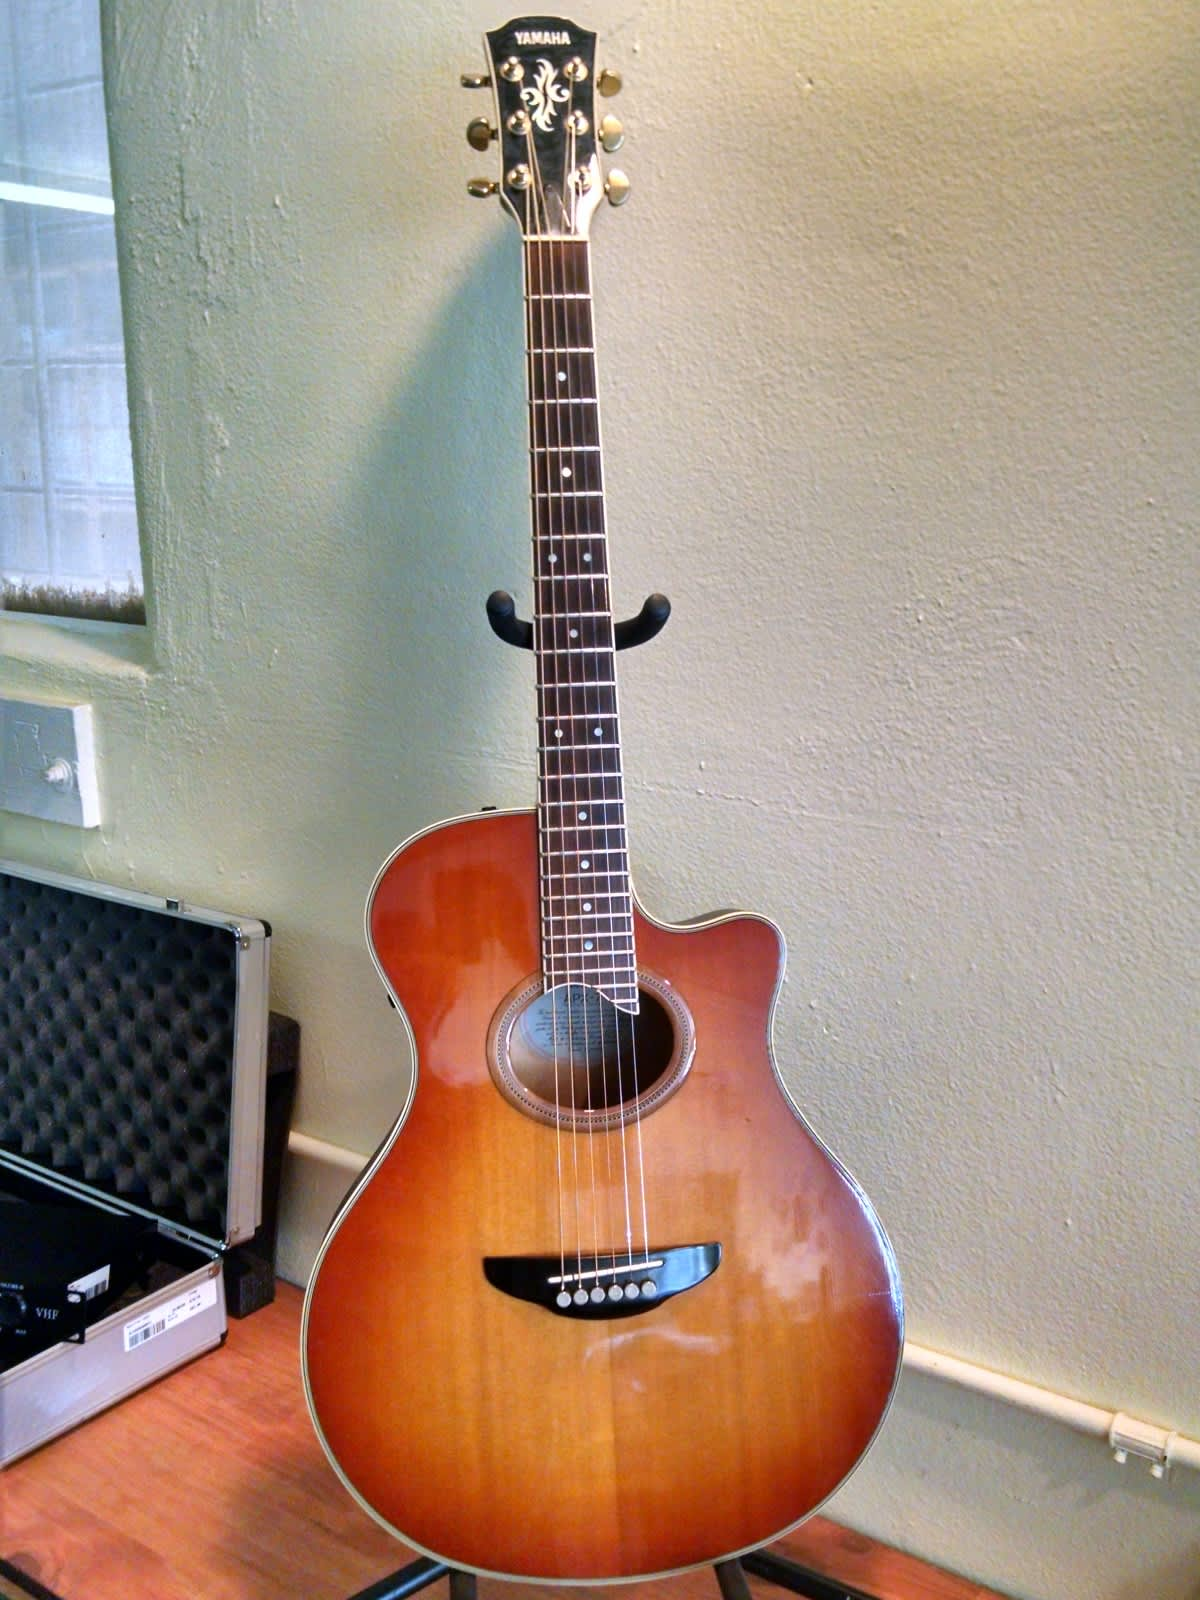 Yamaha acoustic electric guitar model apx 7 reverb for Yamaha acoustic electric guitar